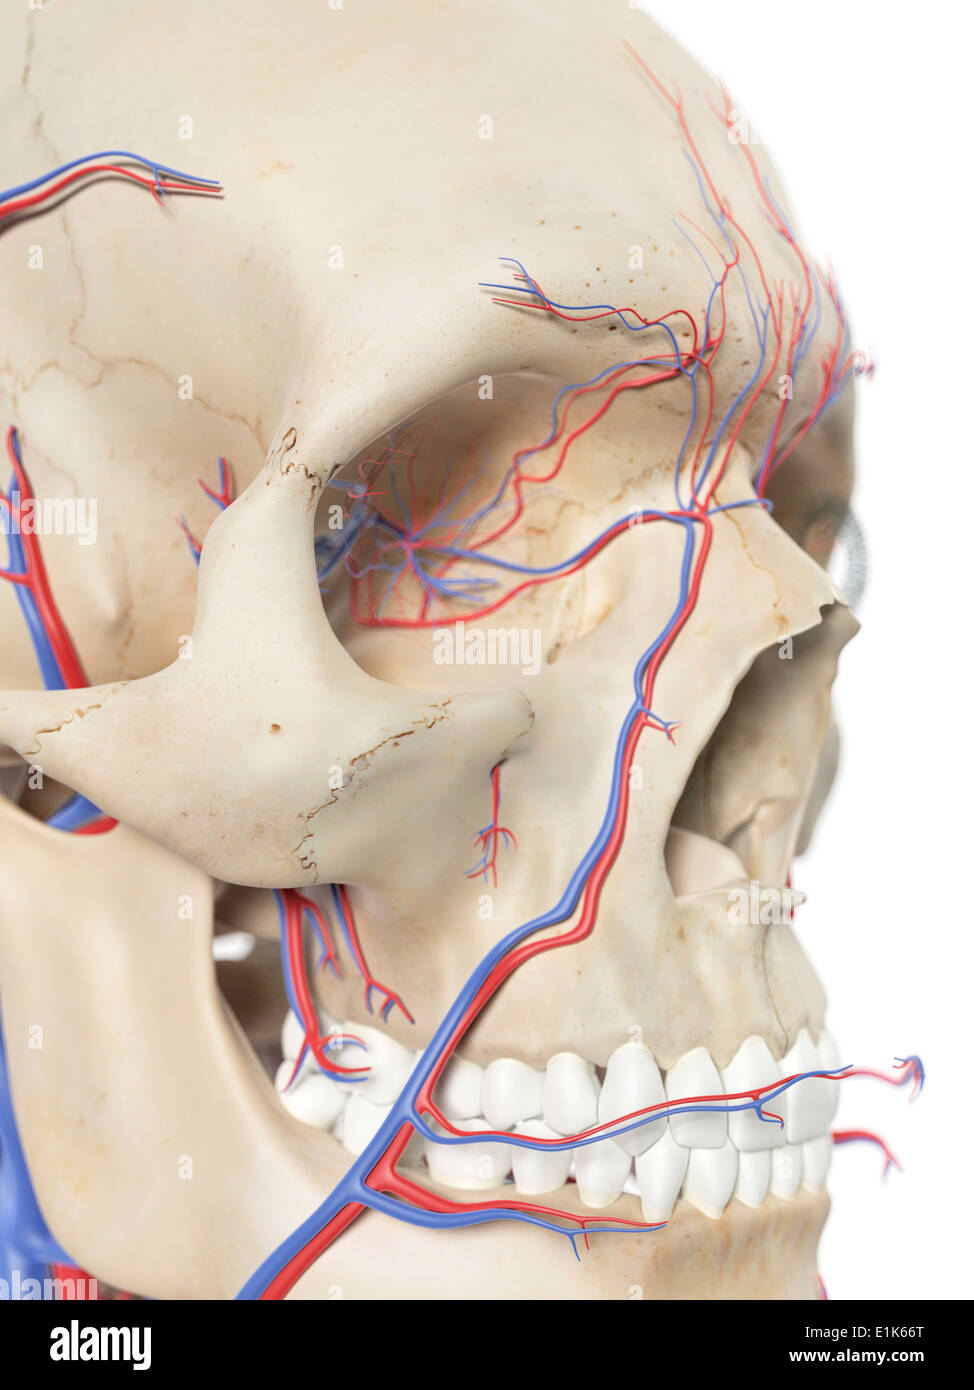 Human Blood Vessels In The Face Computer Artwork Stock Photo